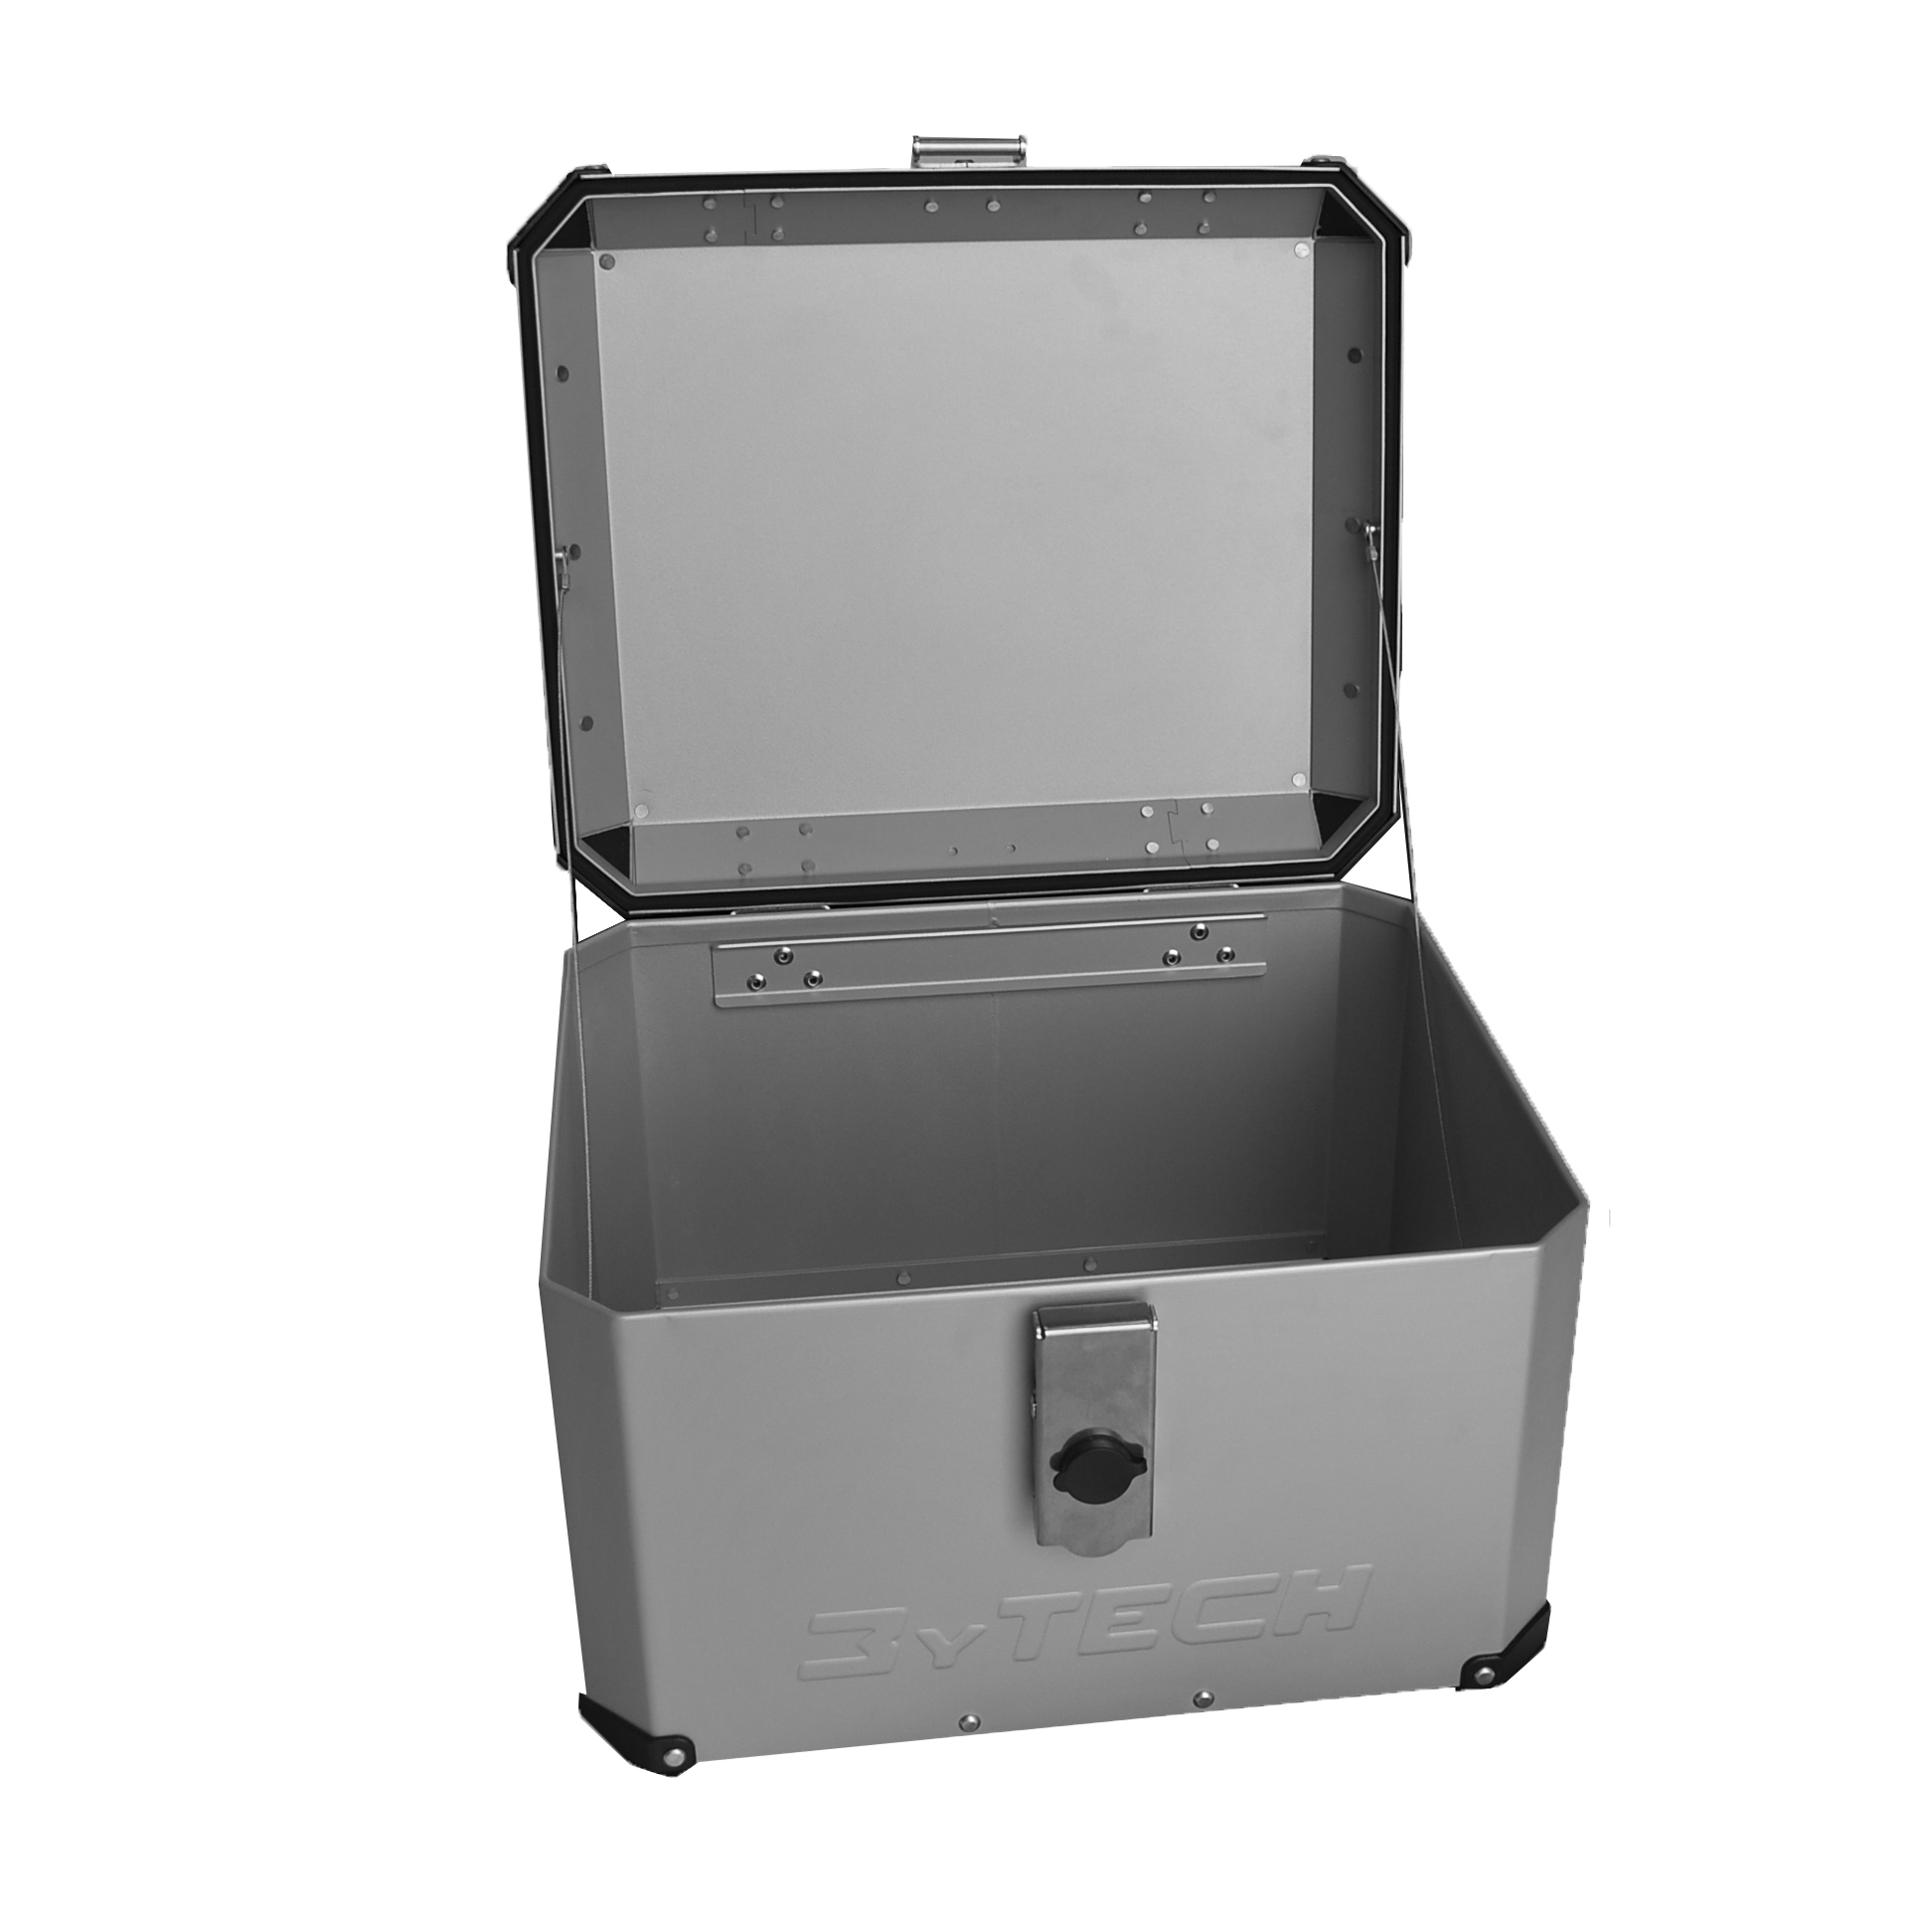 Mytech TOP CASE 33 LITER WITH FRONT OPENING - Silver